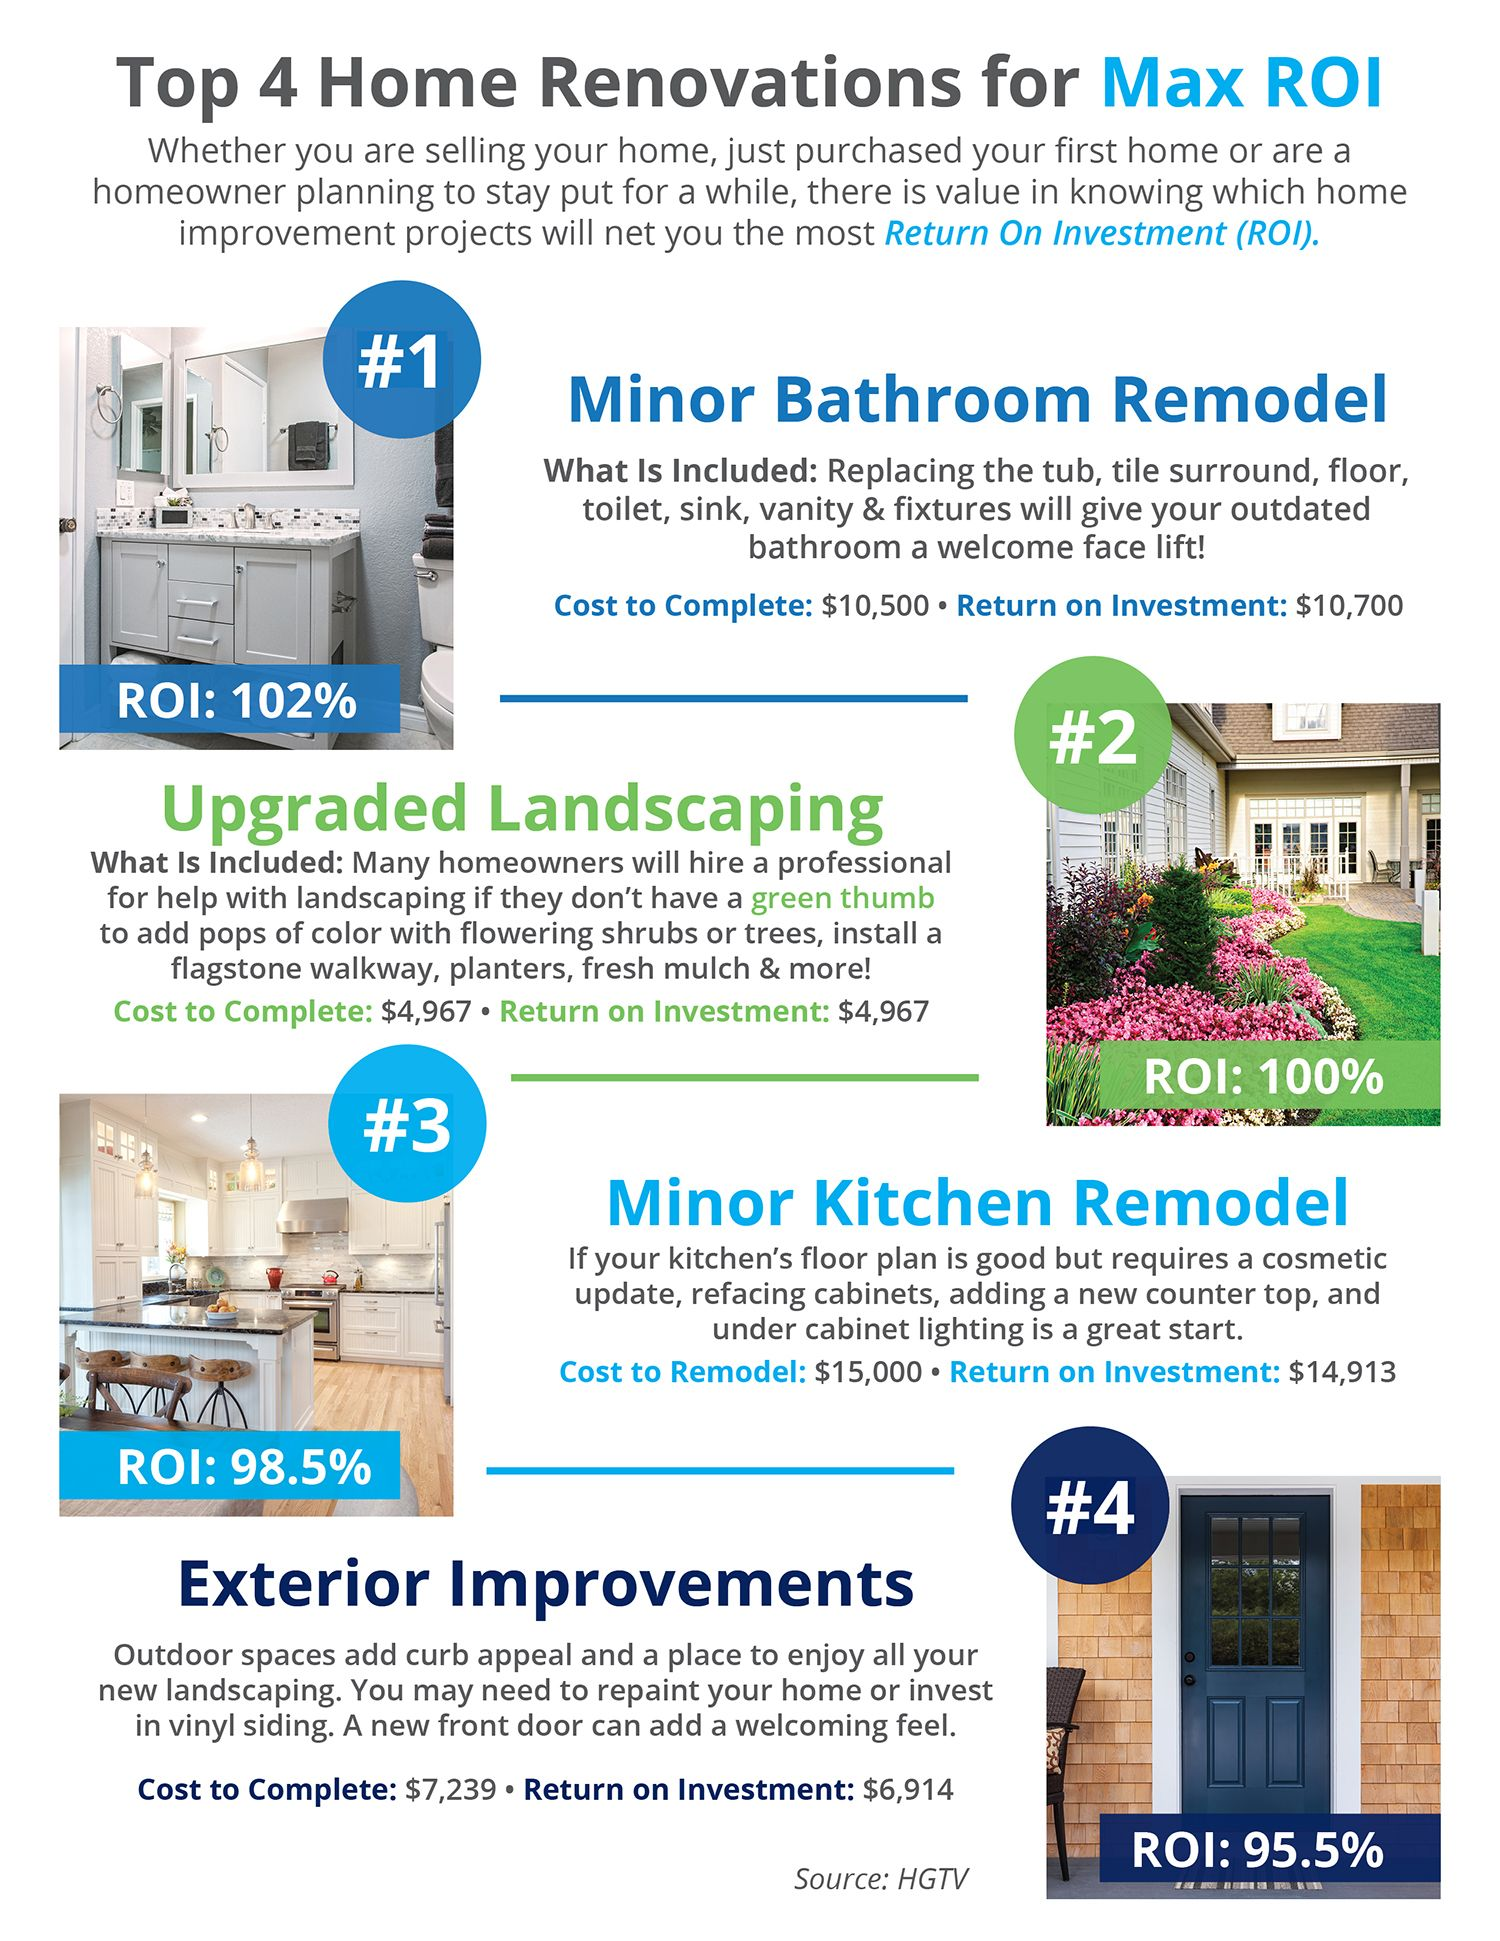 Top 4 Home Renovations For Max Roi Infographic Renovation